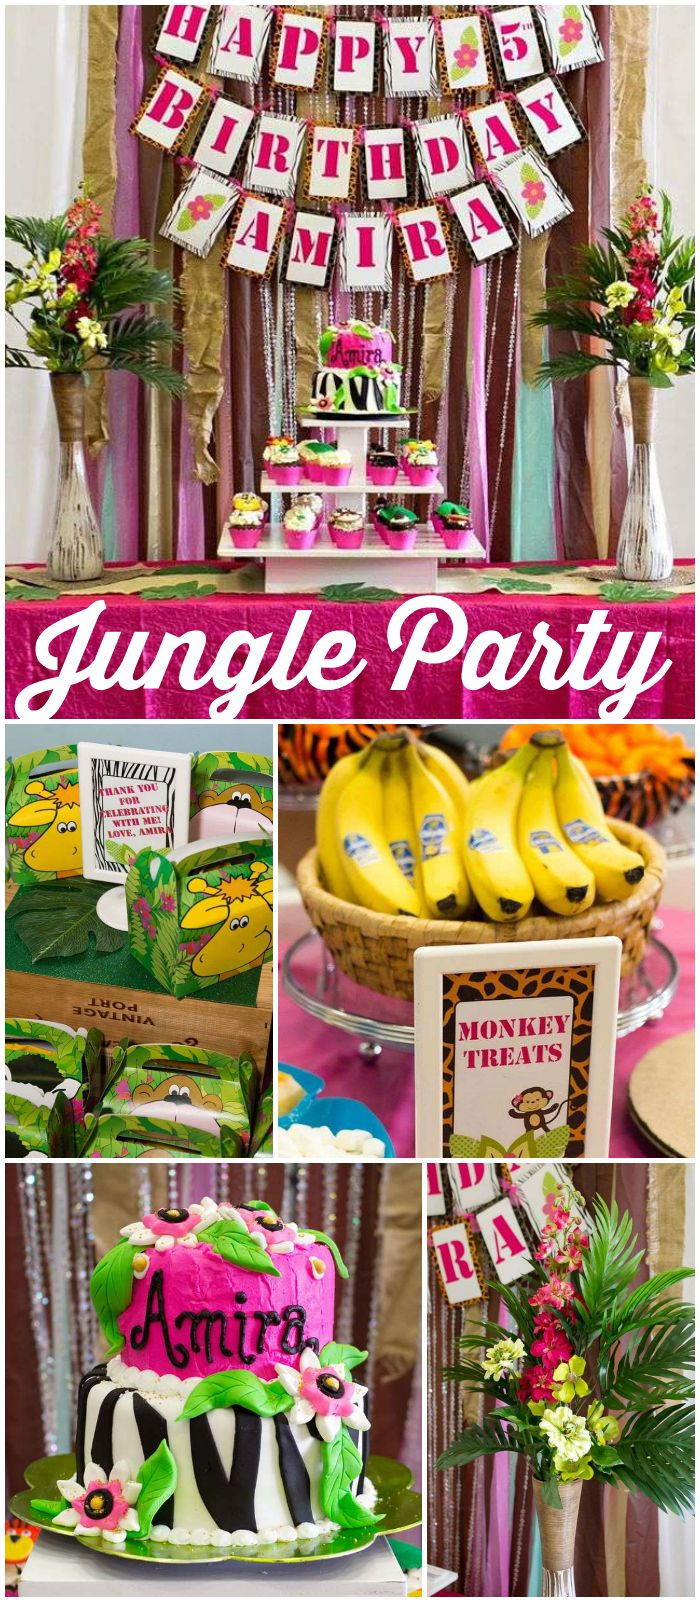 You have to see this girly fun jungle party! See more party ideas at CatchMyParty.com!